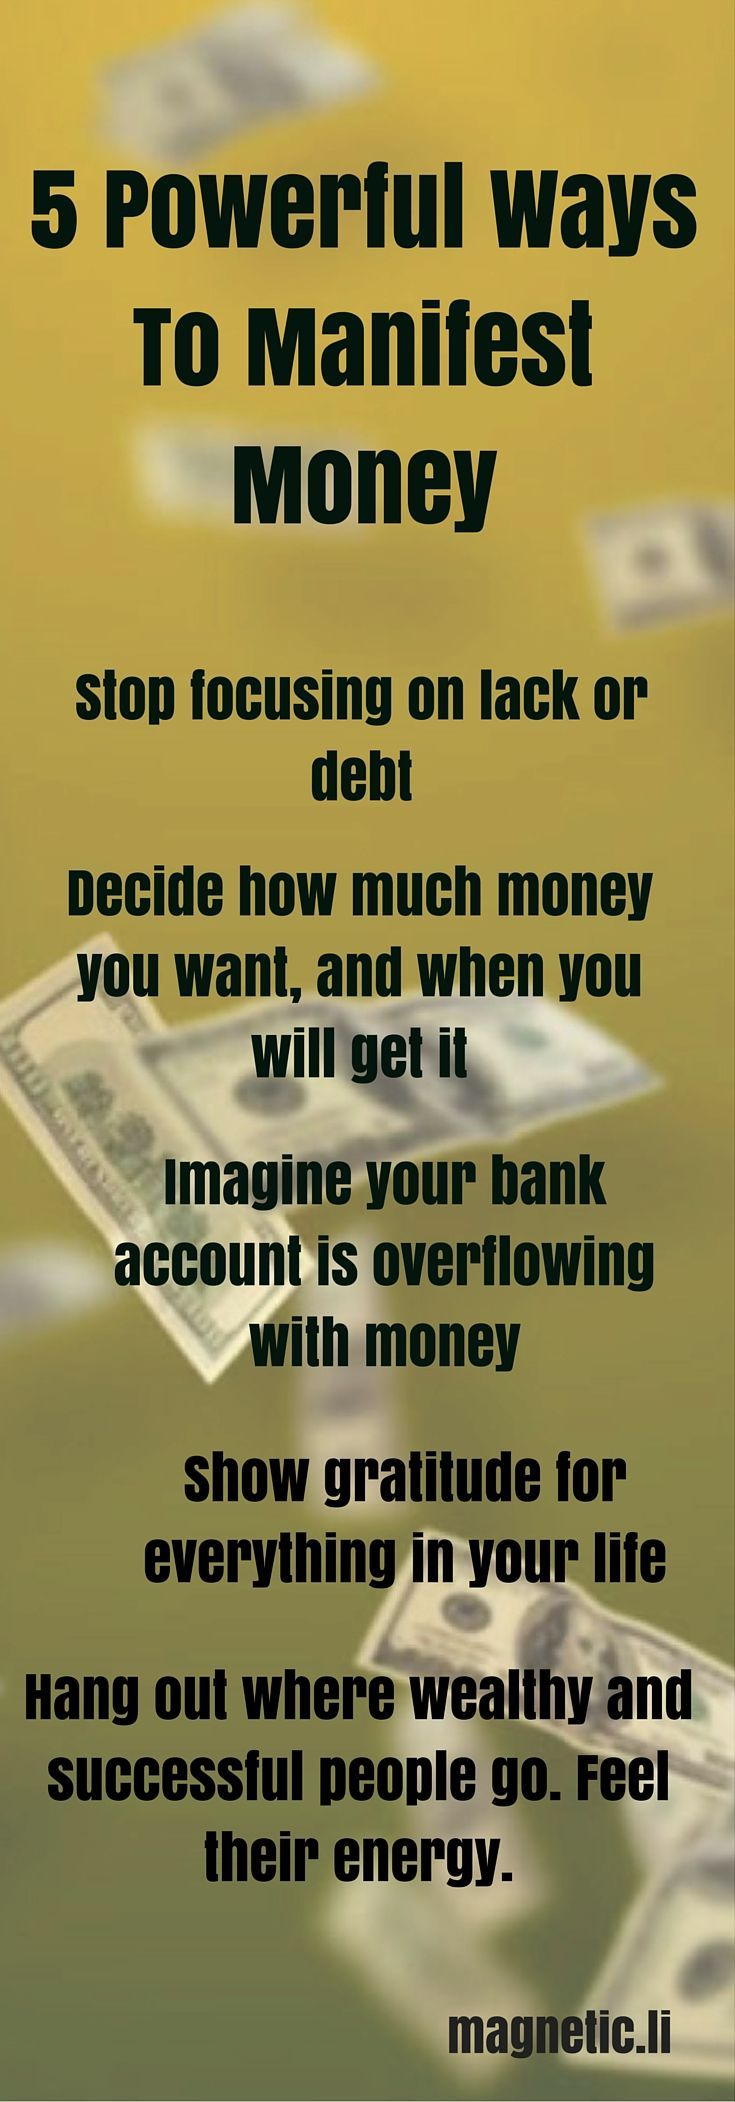 IF you want to know how to manifest money apply these simple rules. Stop focusing on debt, imagine you already have money, then let go and trust the universe will deliver. For more inspiring tips on manifesting money into your life click on the image above to read my blog post